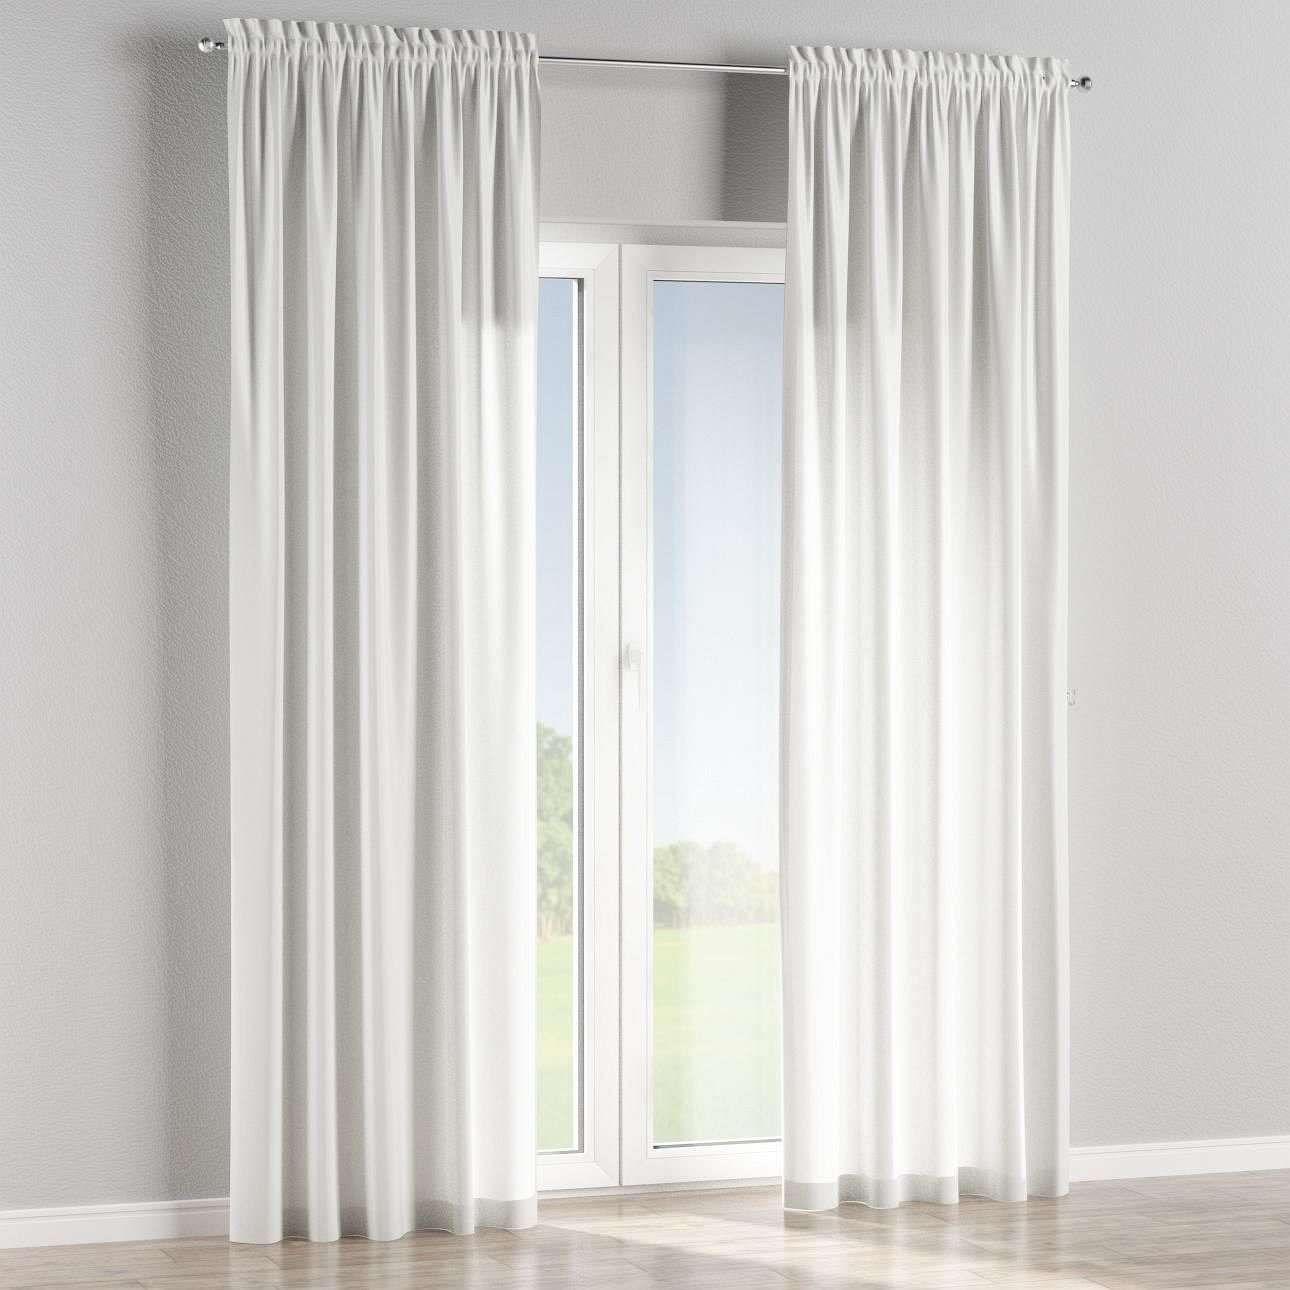 Slot and frill lined curtains in collection Norge, fabric: 140-86